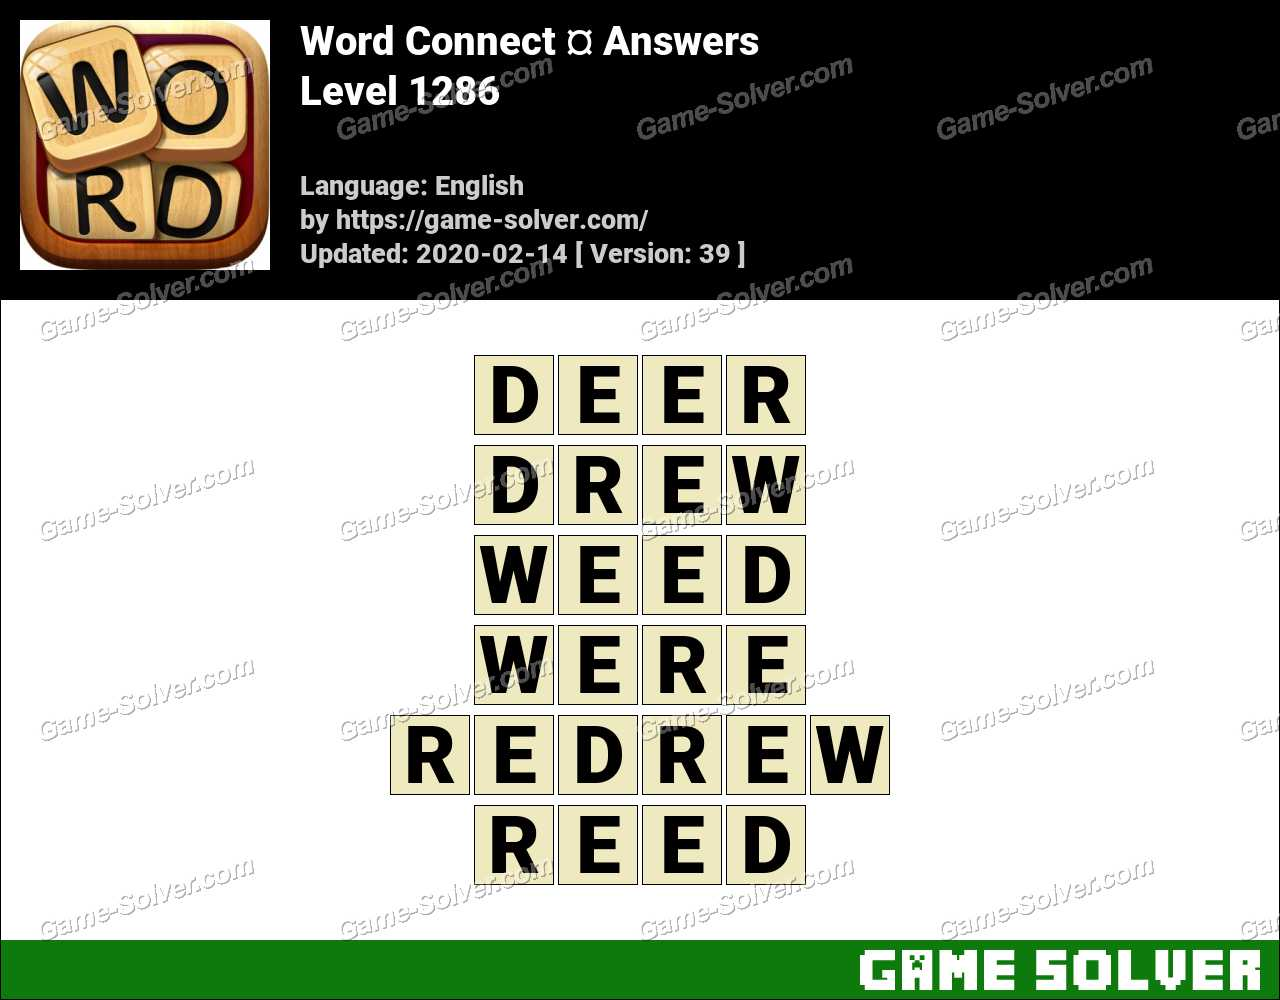 Word Connect Level 1286 Answers